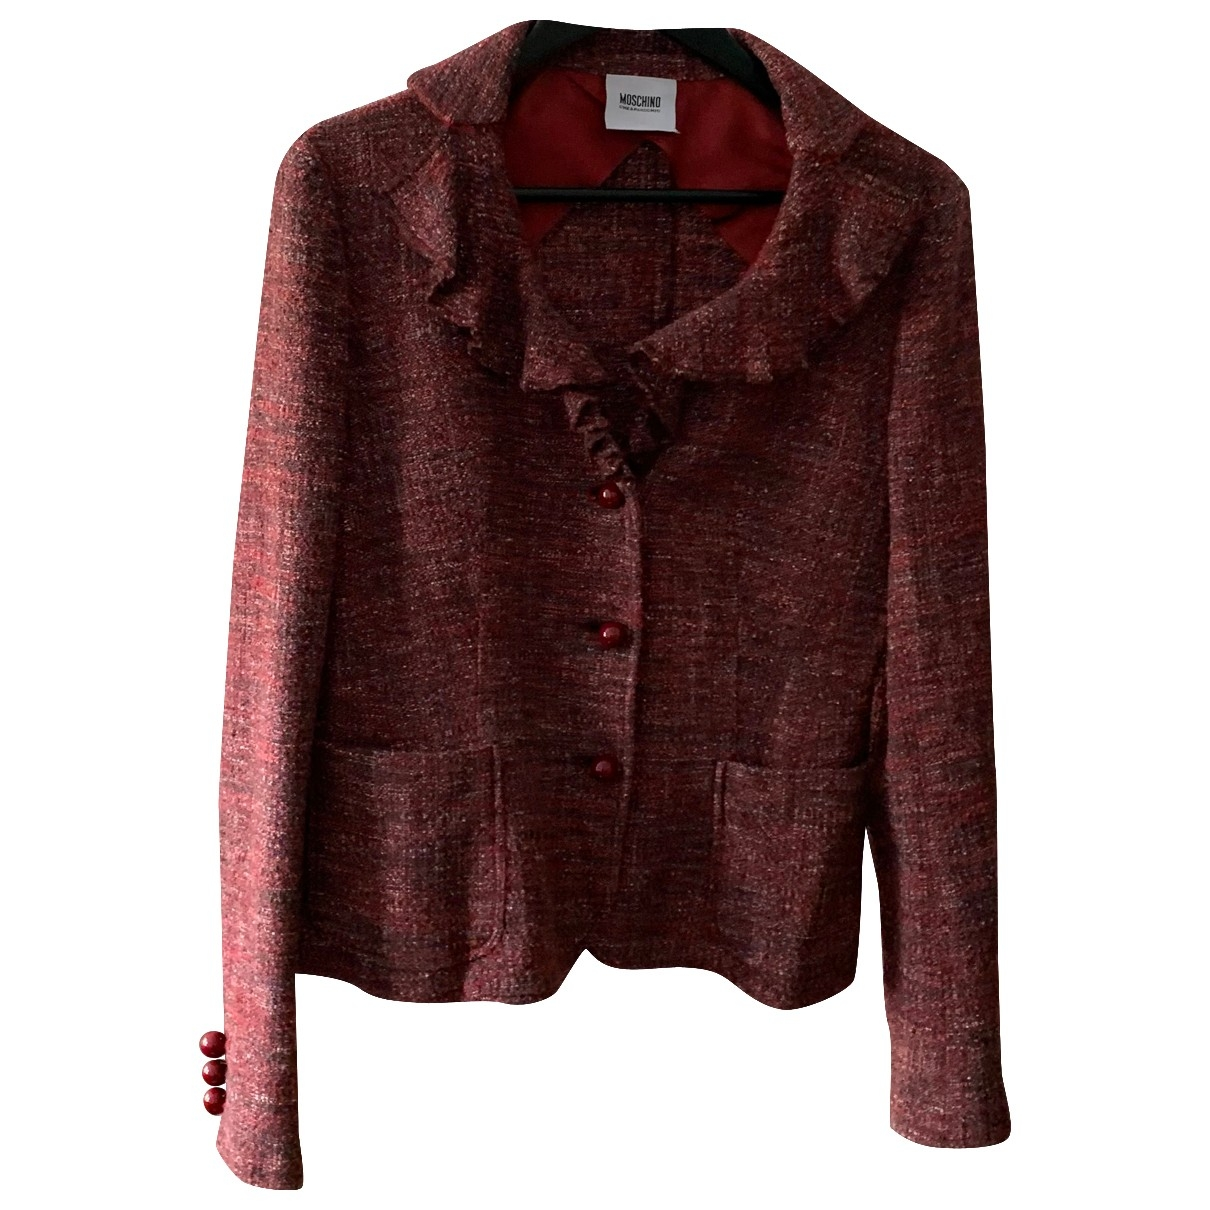 Moschino Cheap And Chic \N Red Wool jacket for Women 44 IT